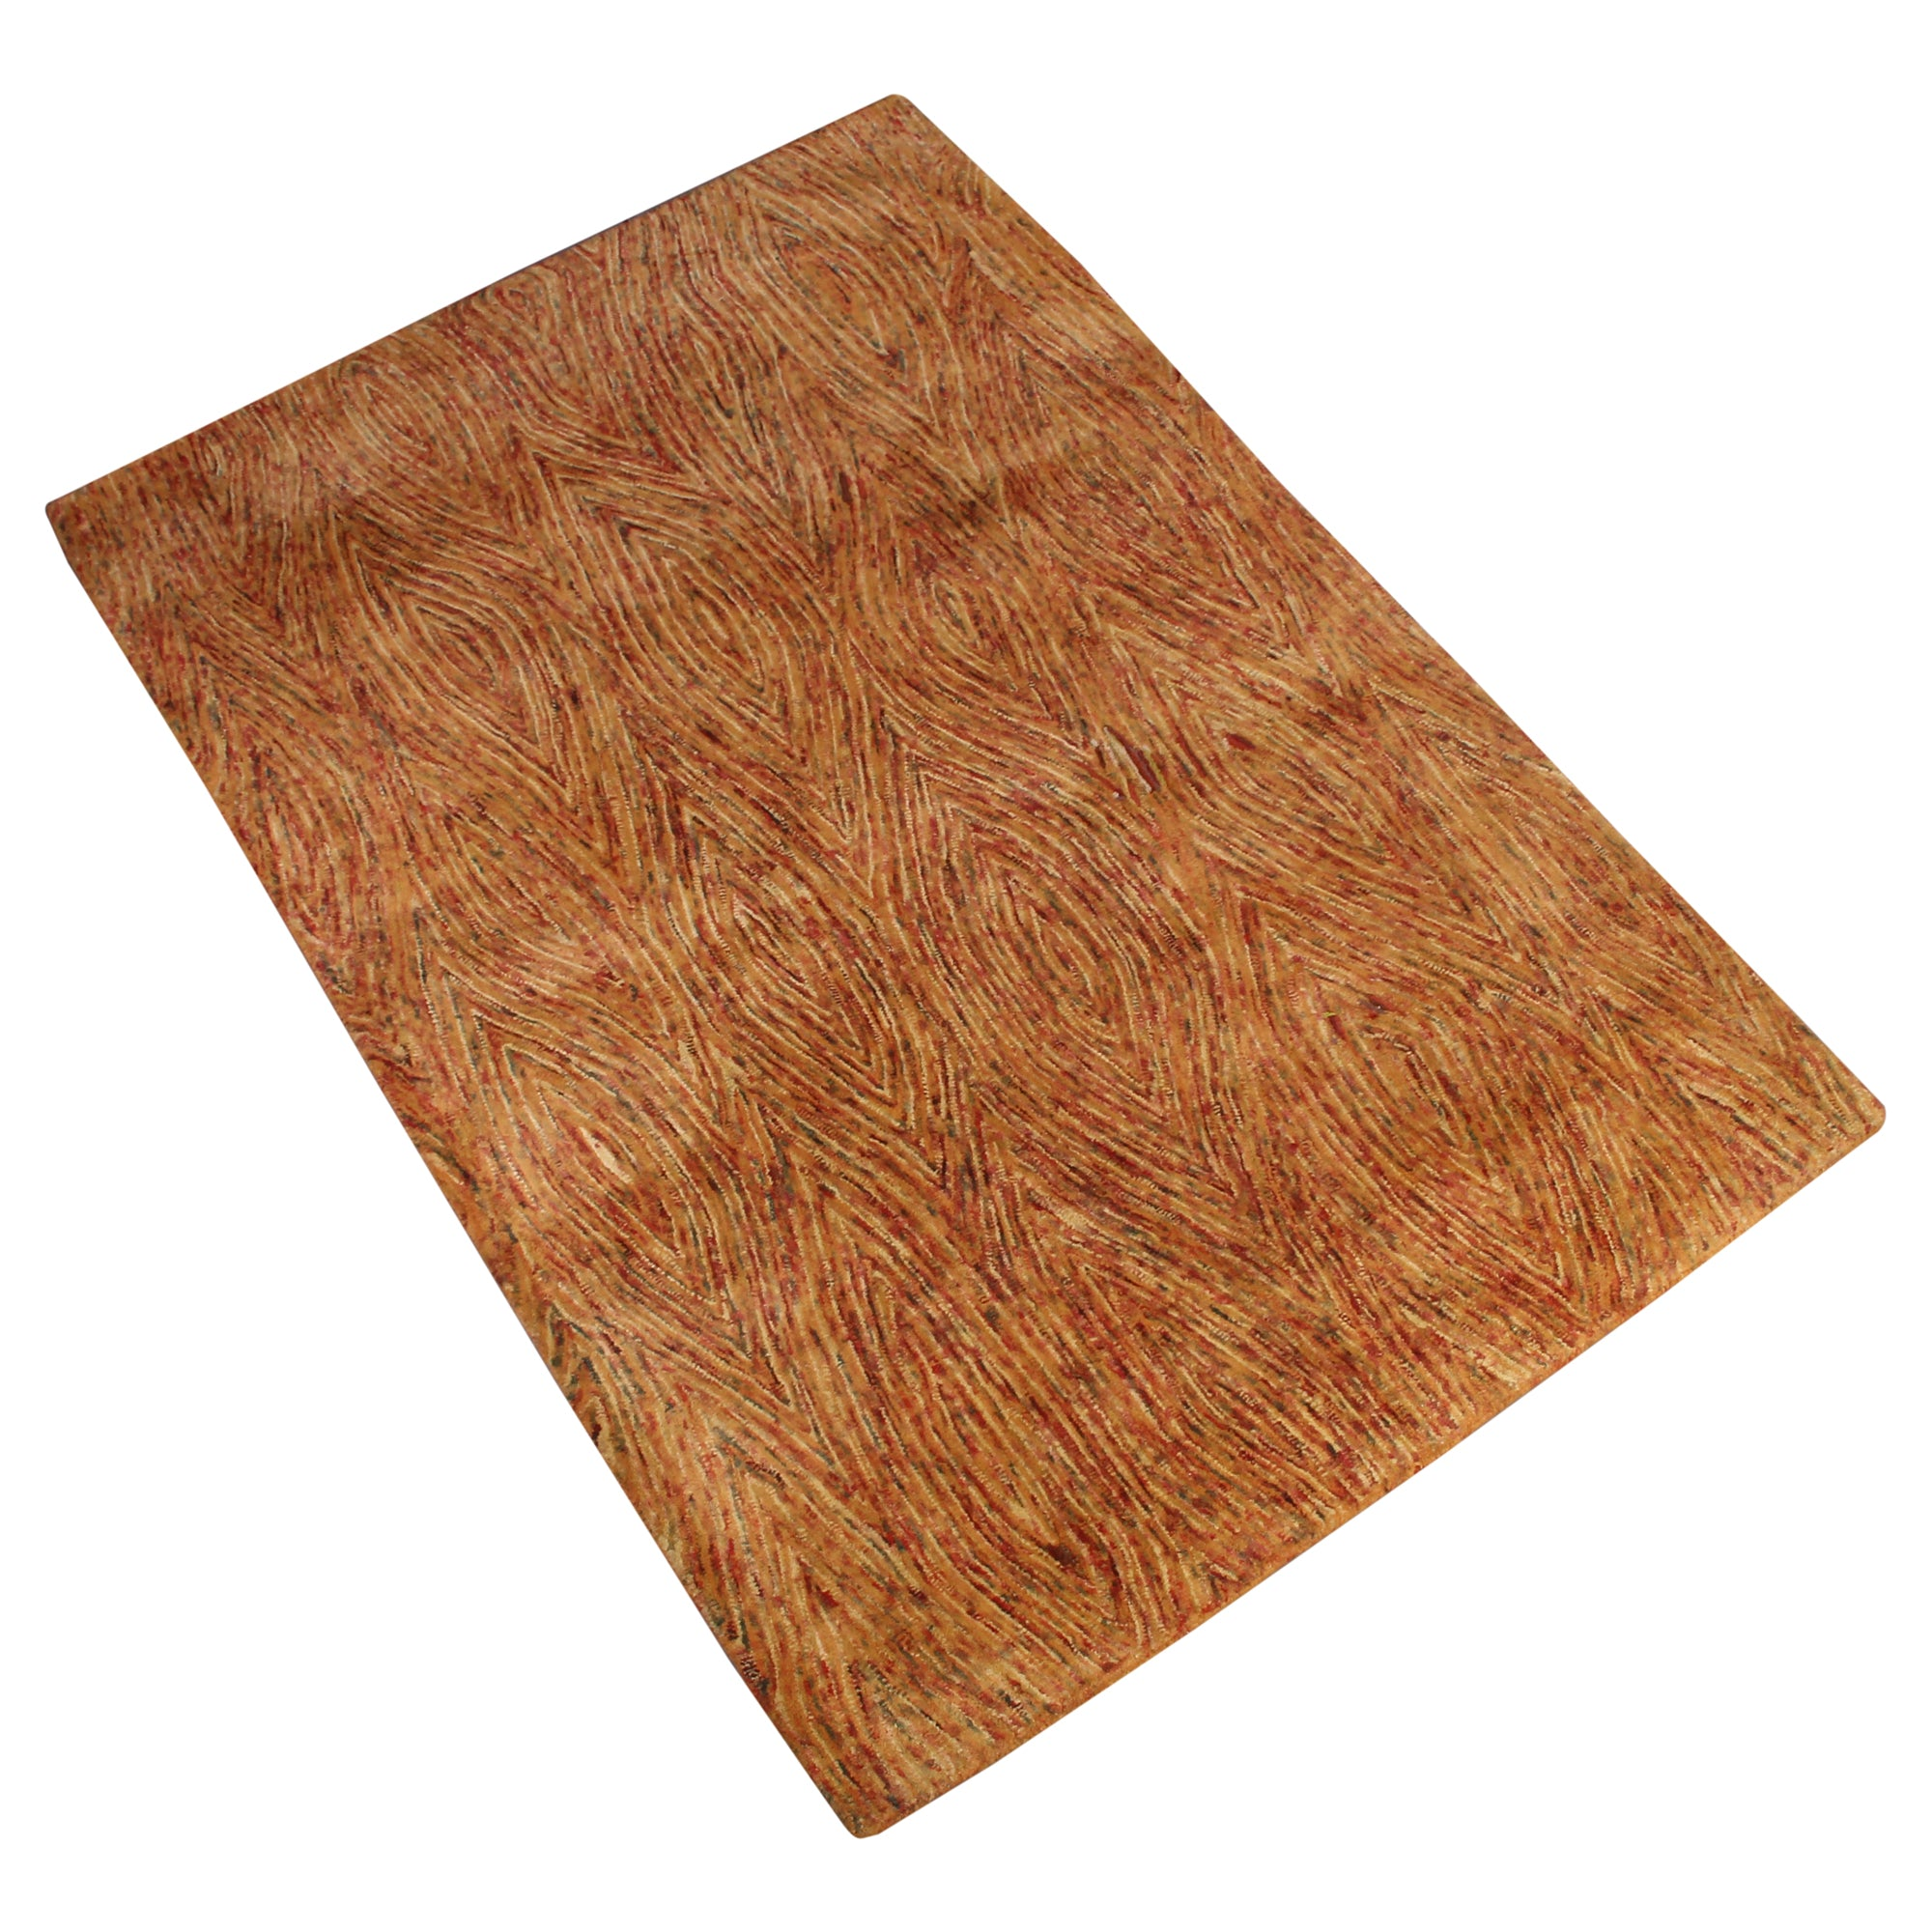 ORANGE ABSTRACT WOODEN BARK DESIGN HAND TUFTED RUG